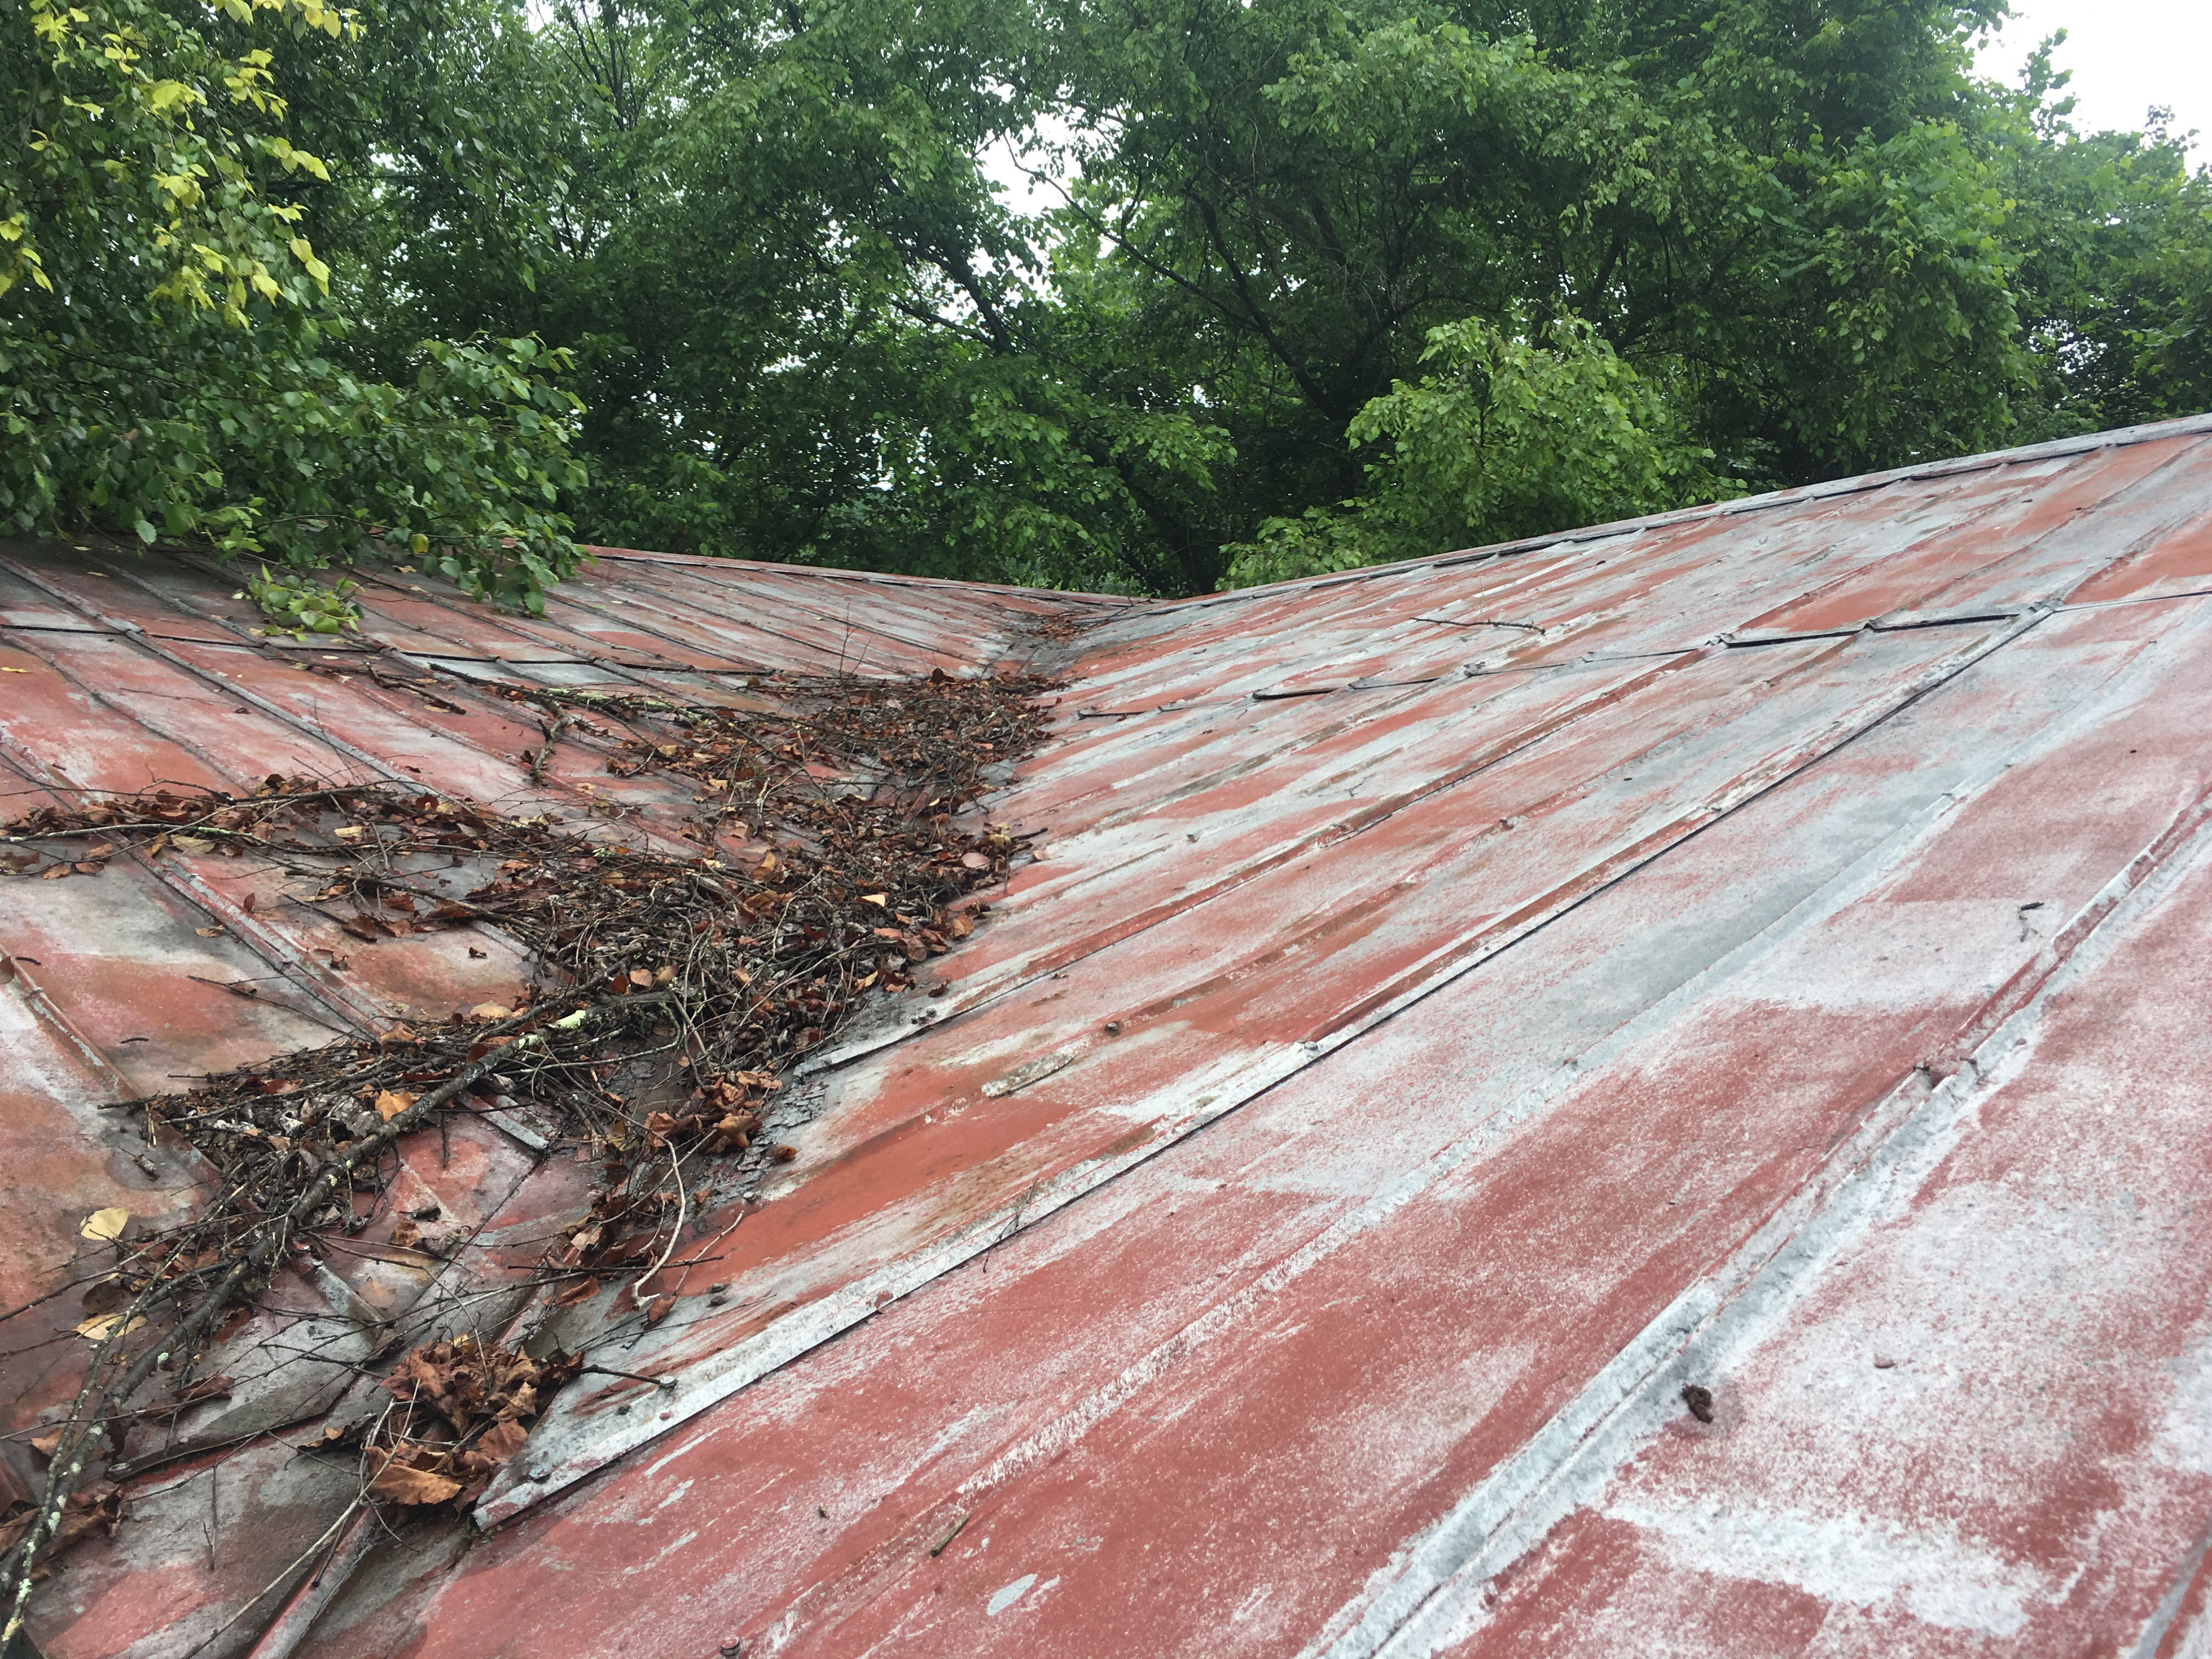 Metalroofing Will Outlast All Shingle Roofing Products This Roof Was Installed In The 60s And Is Finally Ready To Be Replace Roofing Shingling House Exterior